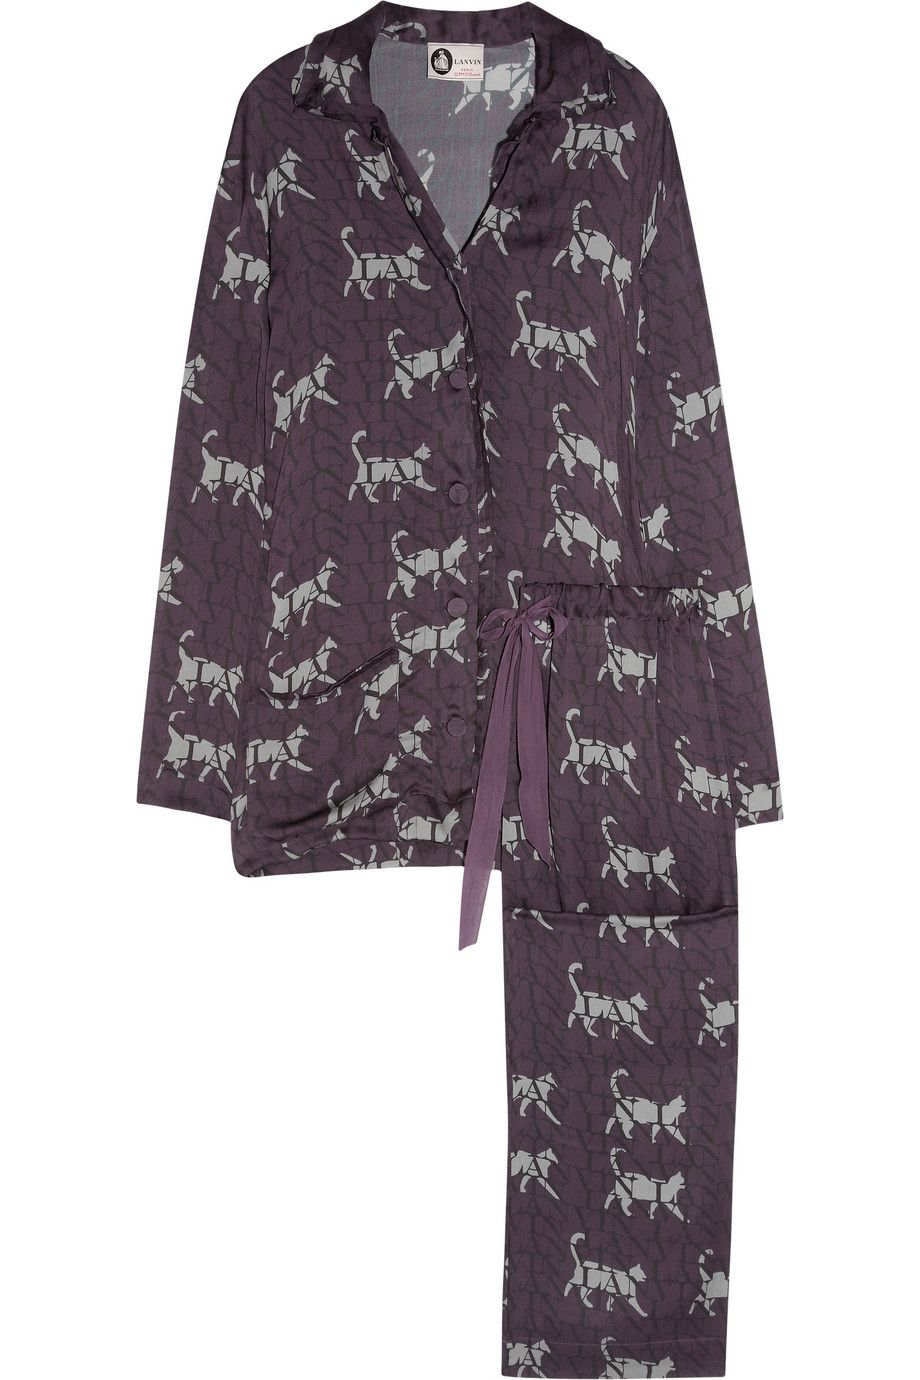 God I love a button up silk pajama. By Lanvin + cats  ! Yes 8394b28a6bcd7